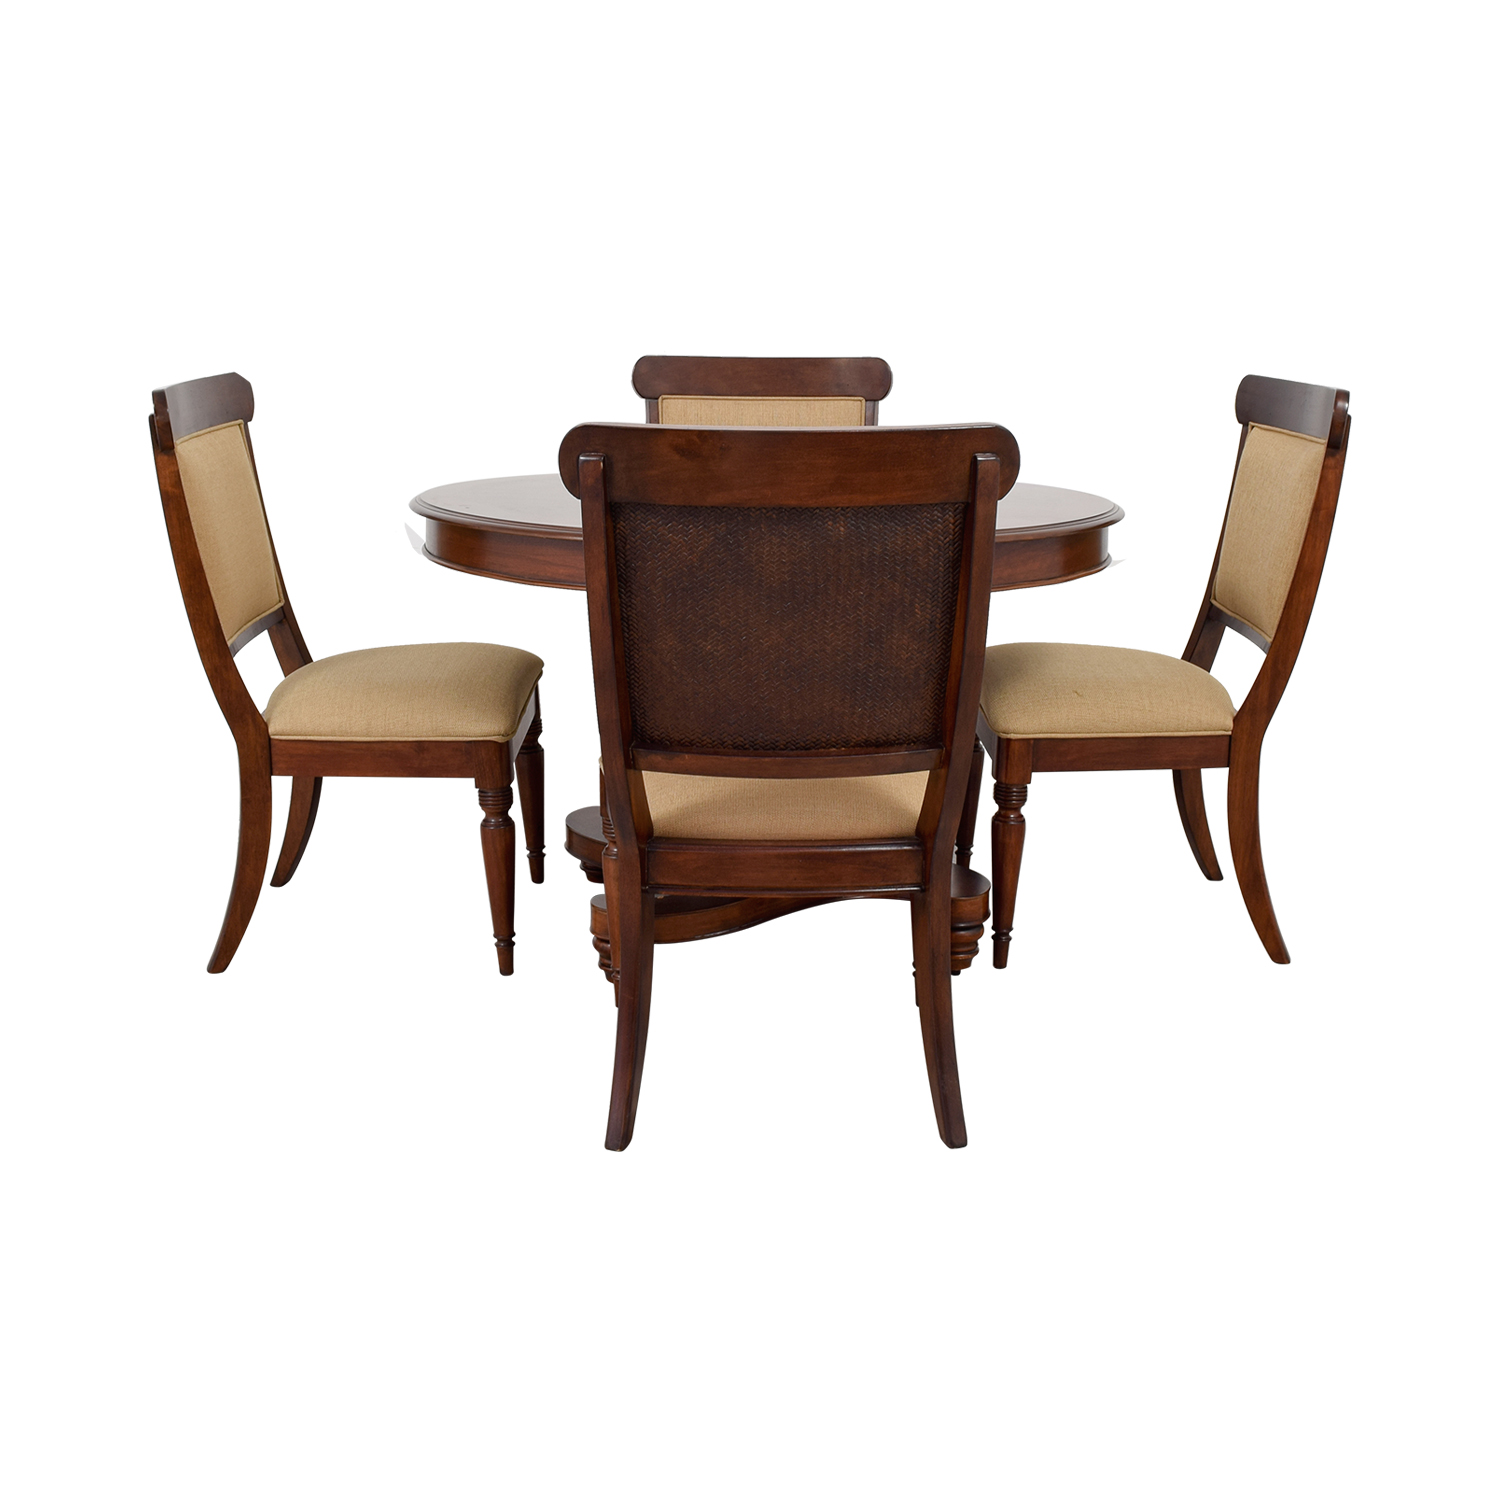 buy Macy's Wood Extendable Dining Set with Upholstered Chairs Macy's Dining Sets